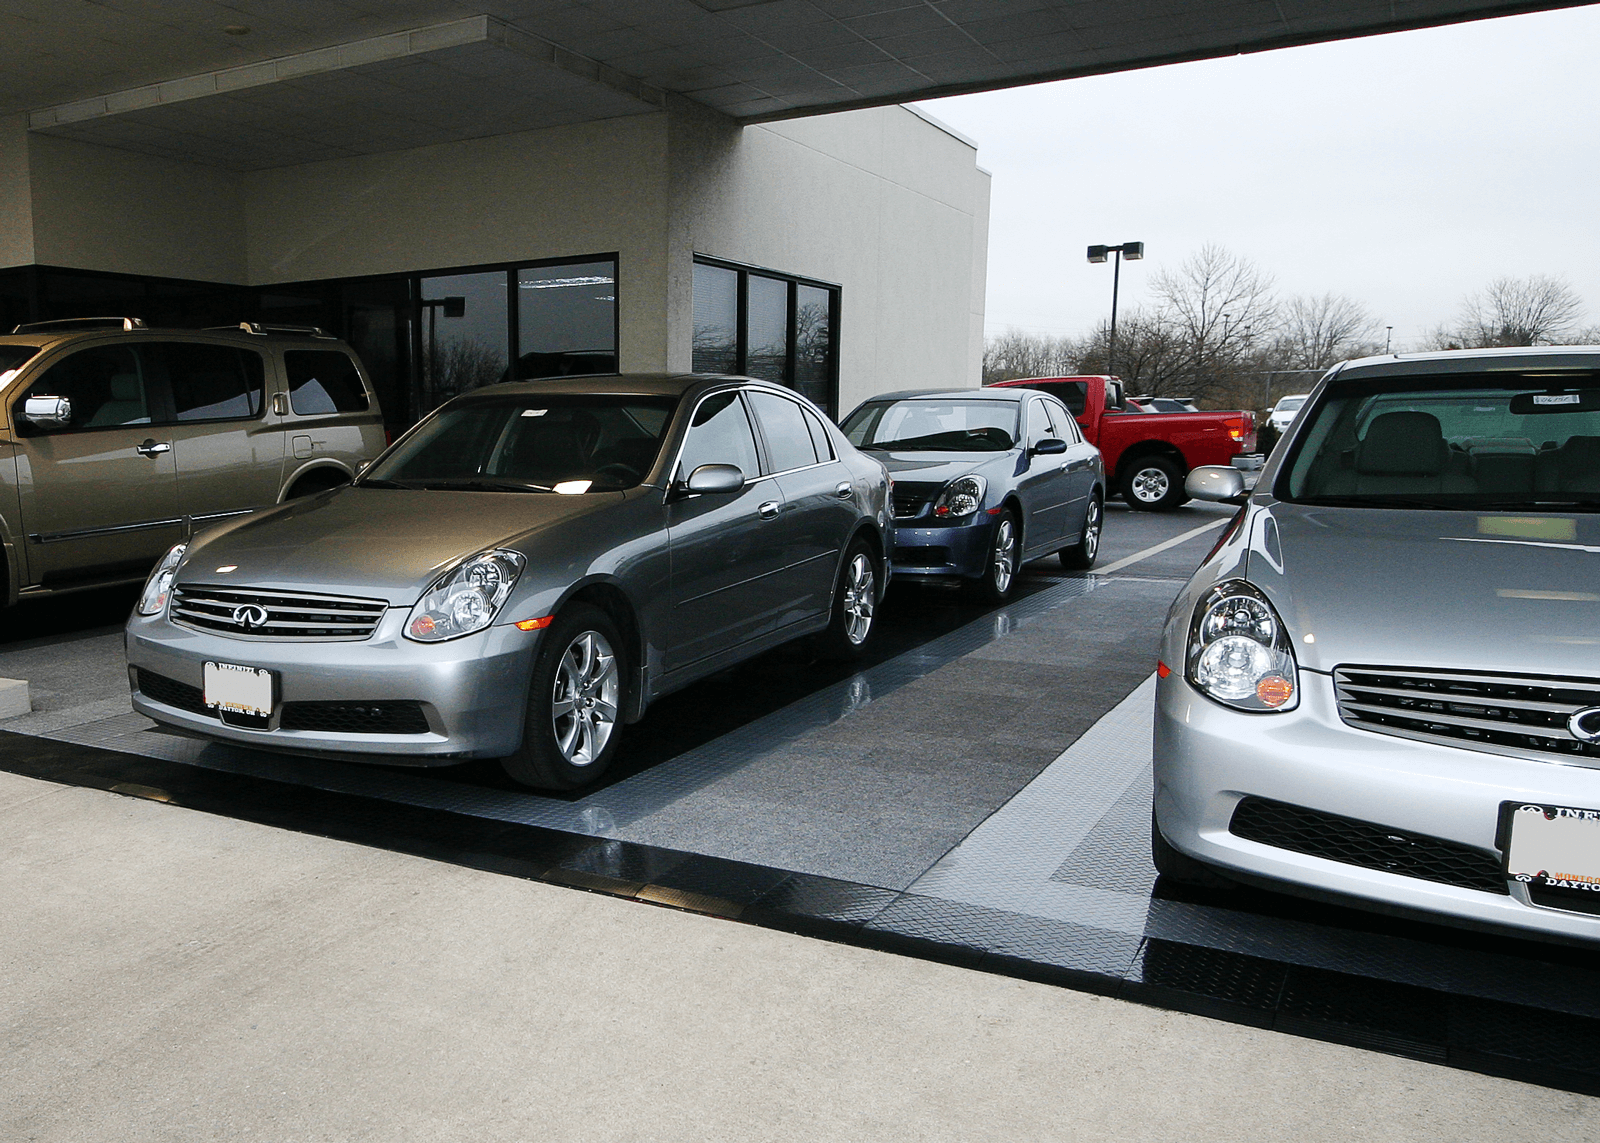 Infiniti delivery bays